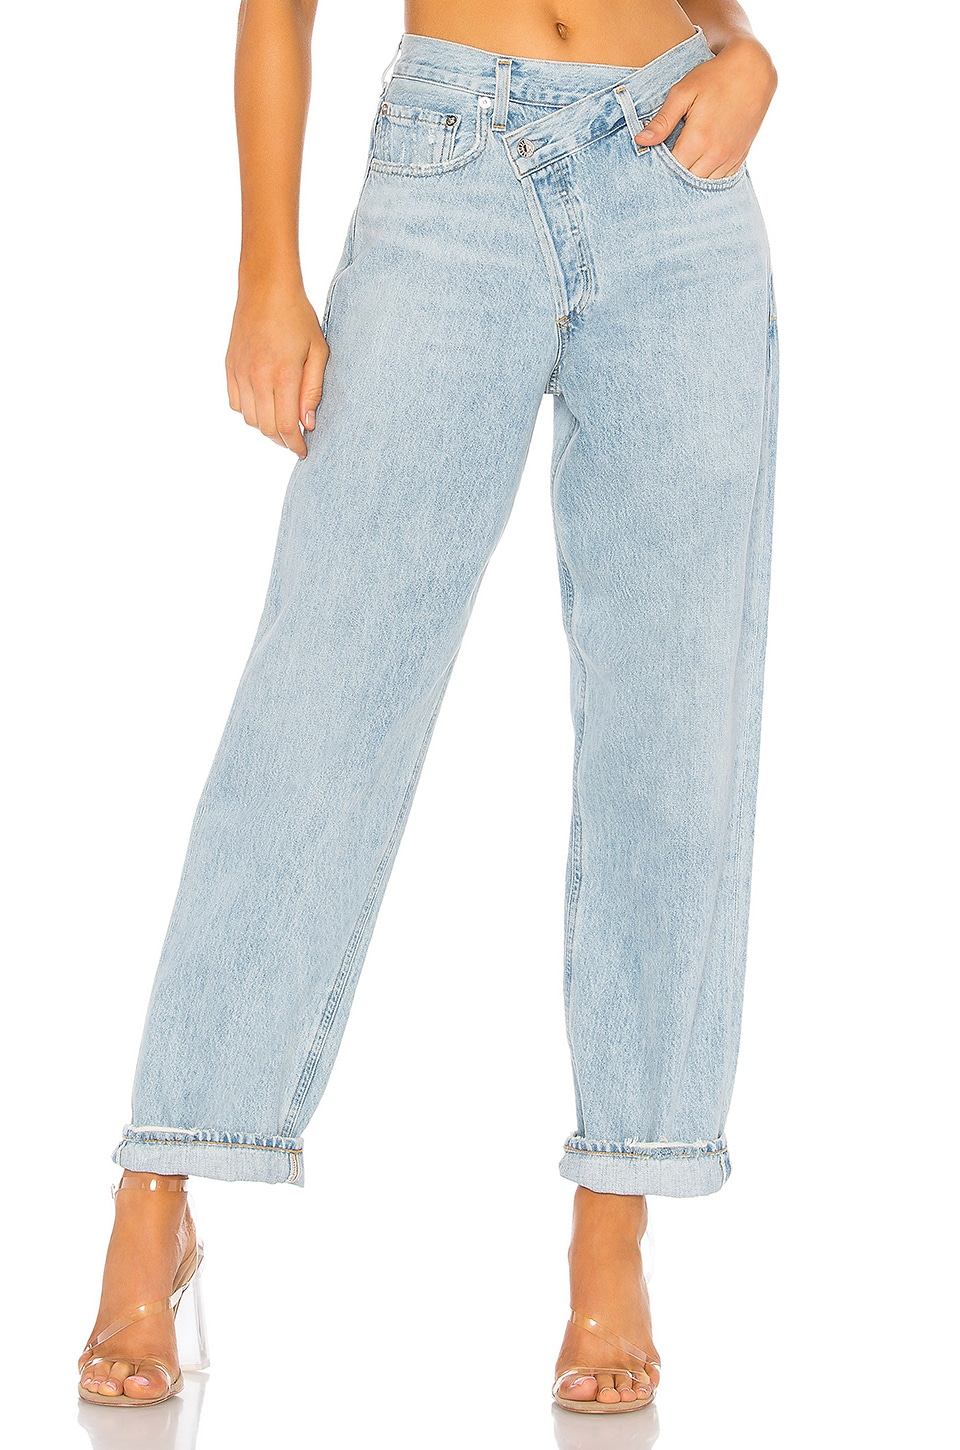 Criss Cross Upsized Jean             AGOLDE                                                                                                       CA$ 264.00 15